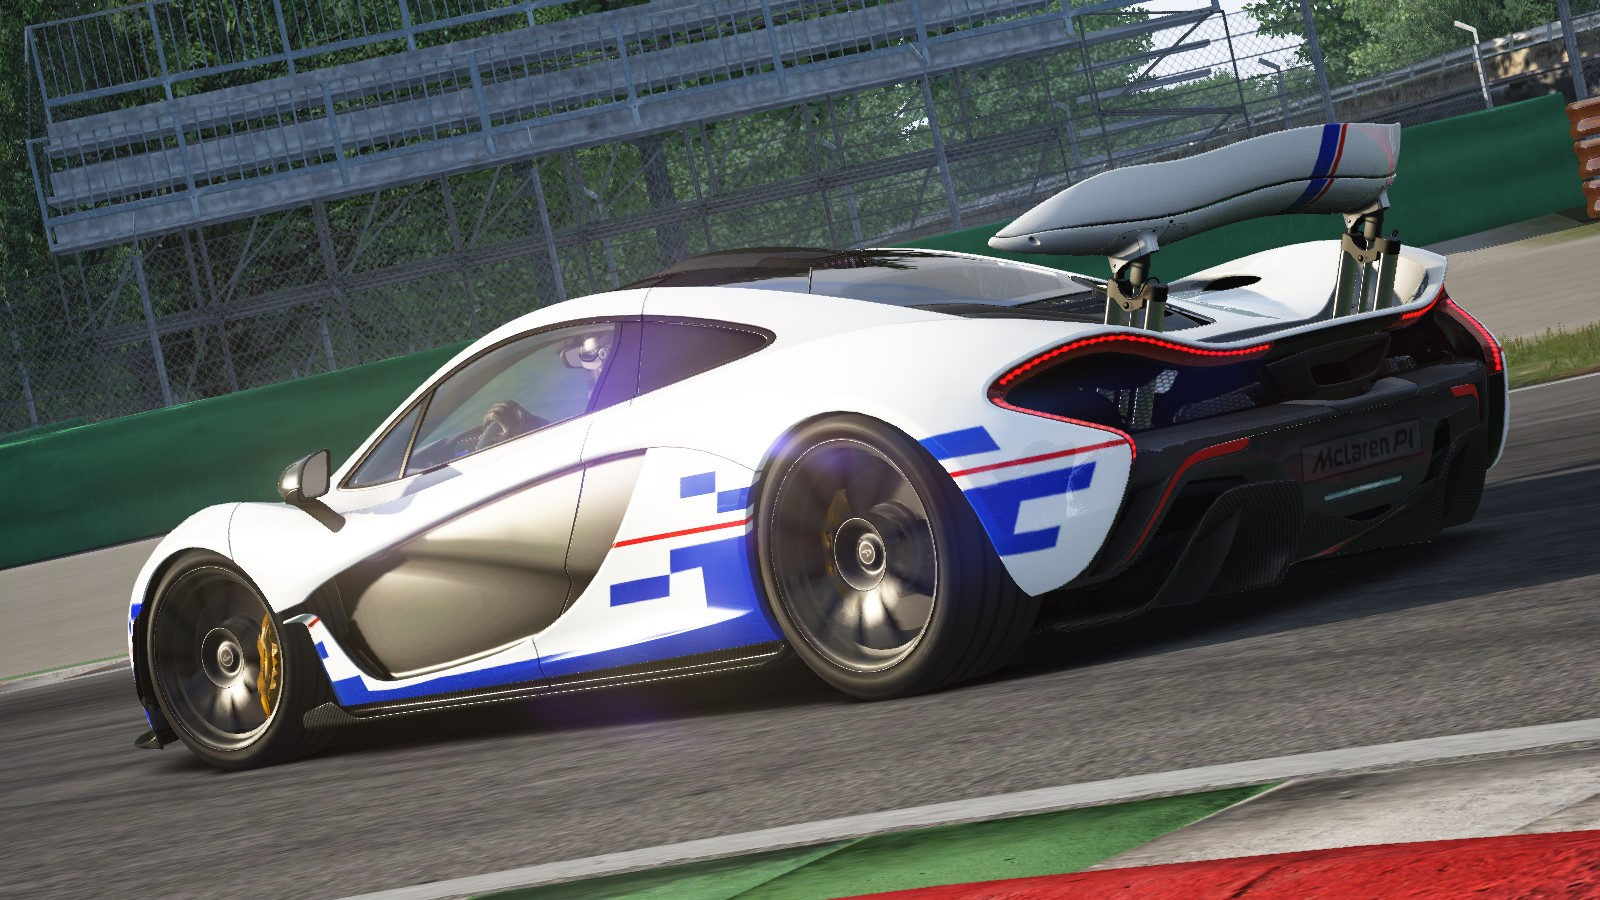 Screenshot_ks_mclaren_p1_monza_8-9-115-17-35-2.jpg